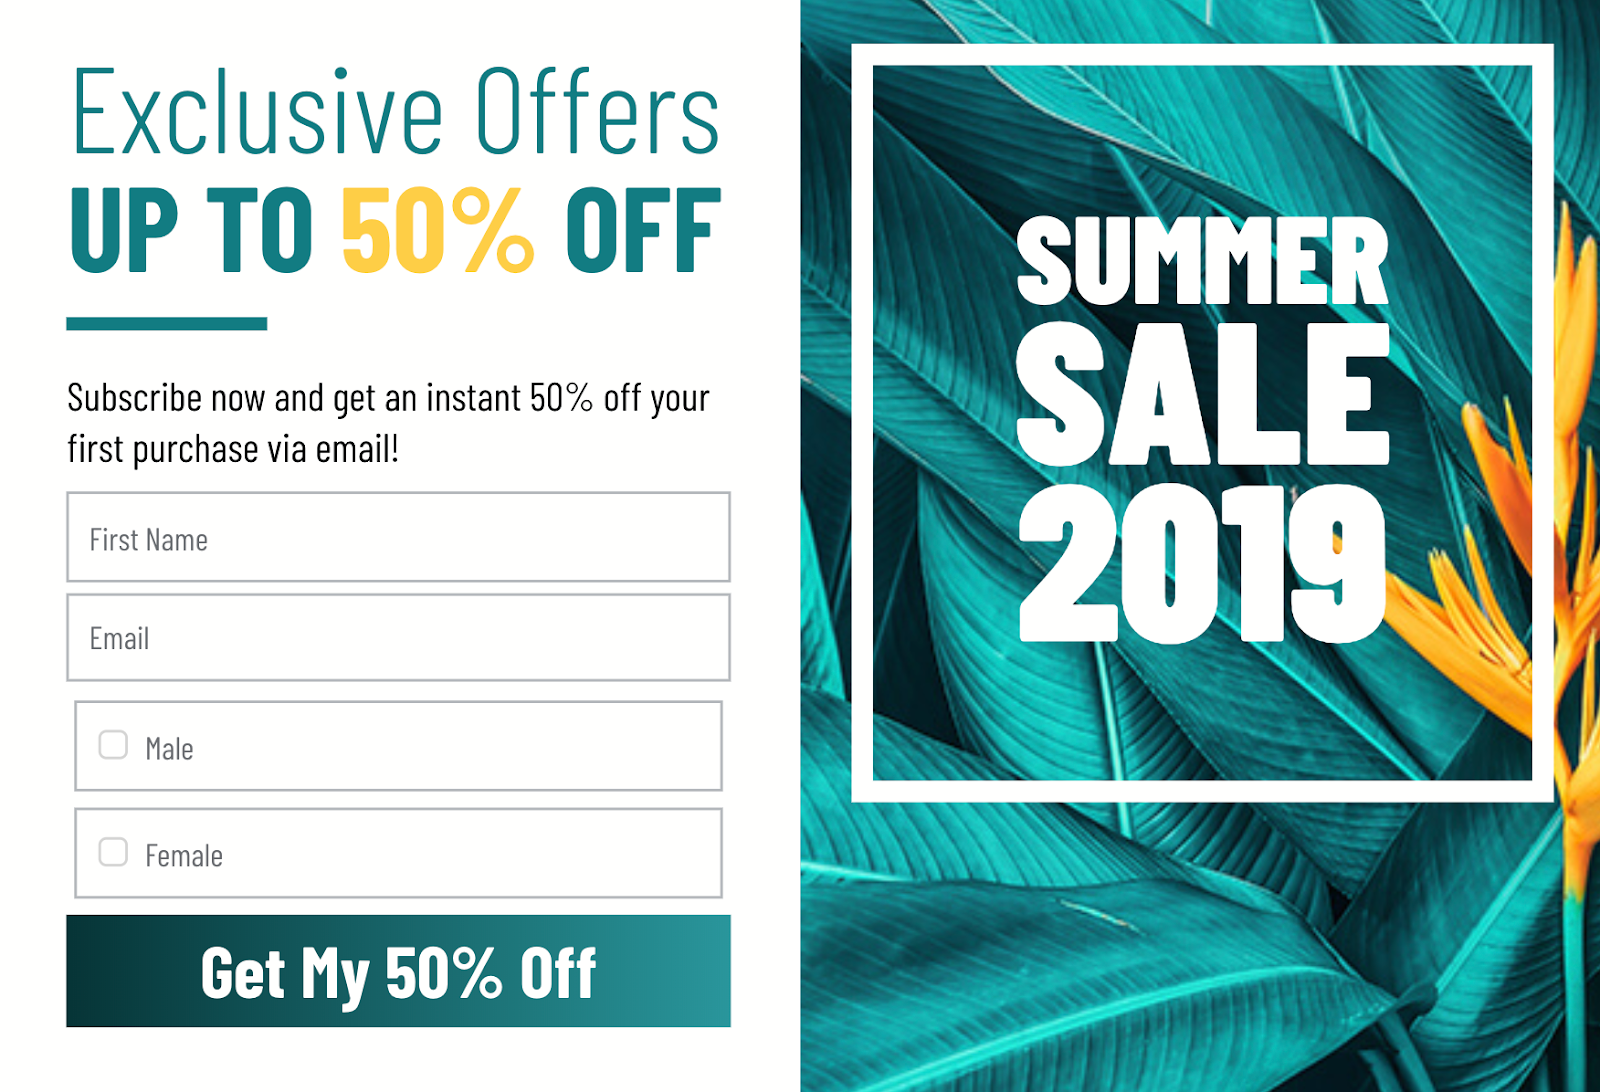 Summer Sale 2019 exclusive offer email design